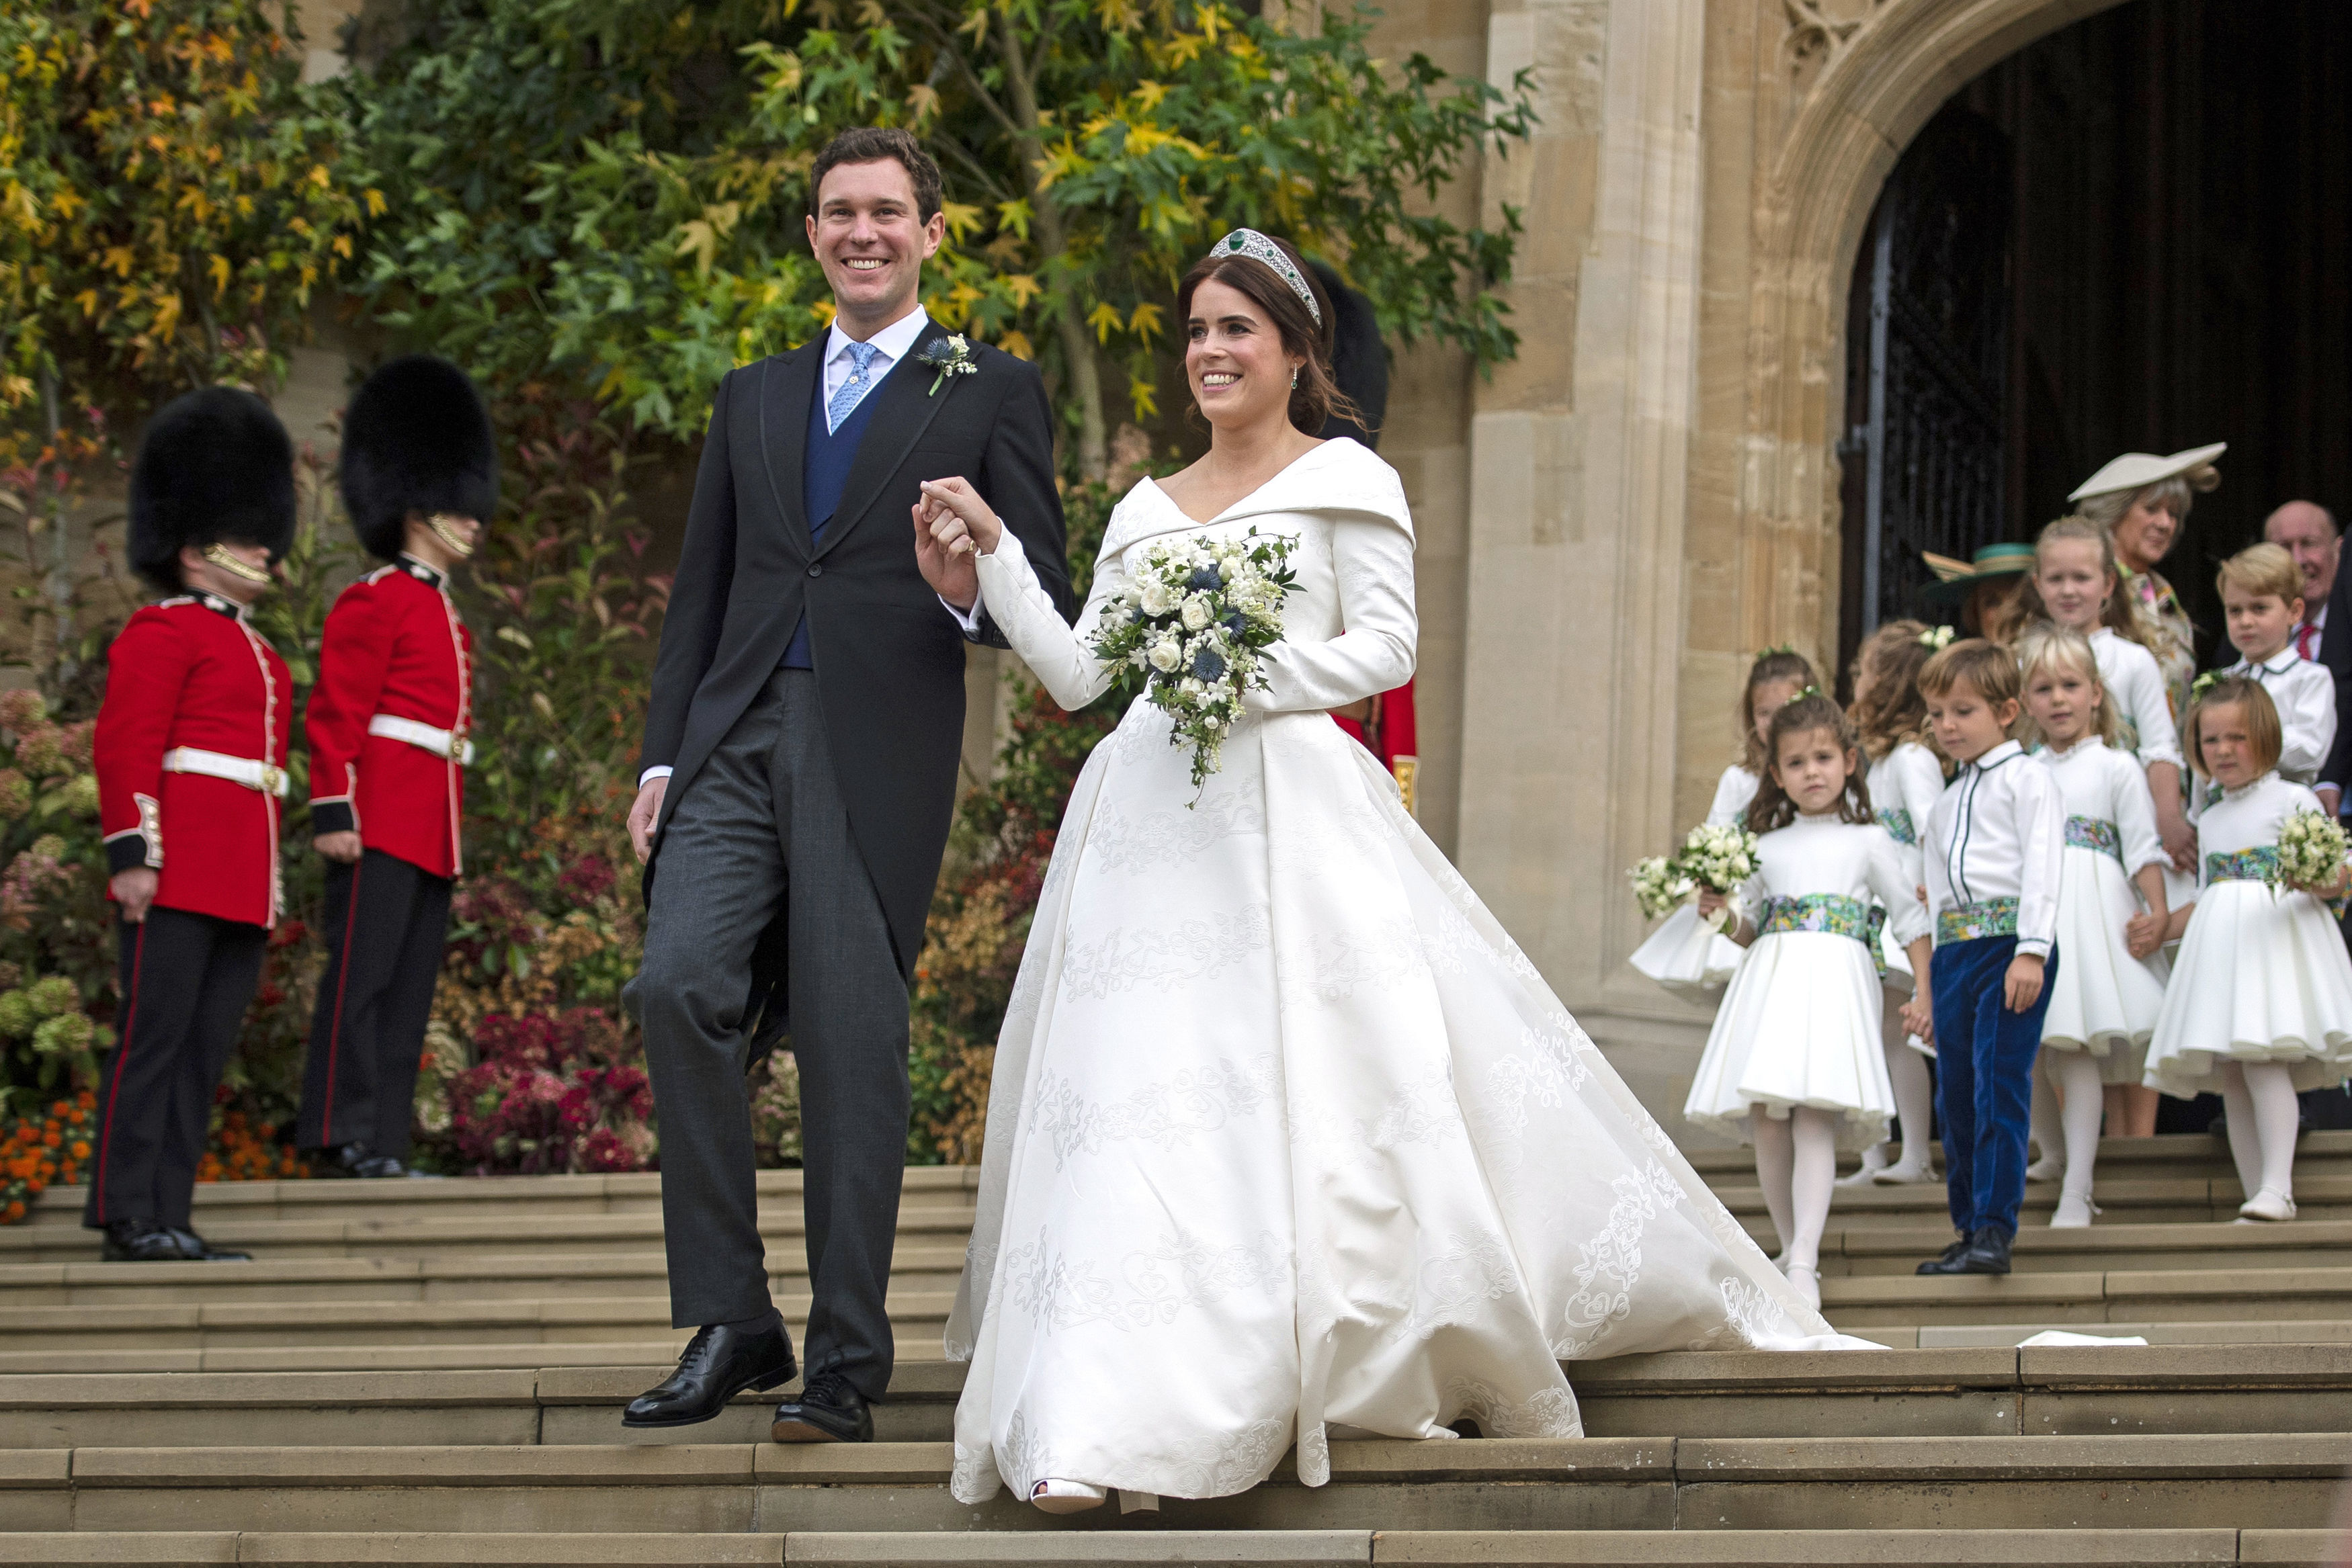 Five biggest questions about Princess Eugenie's royal baby answered